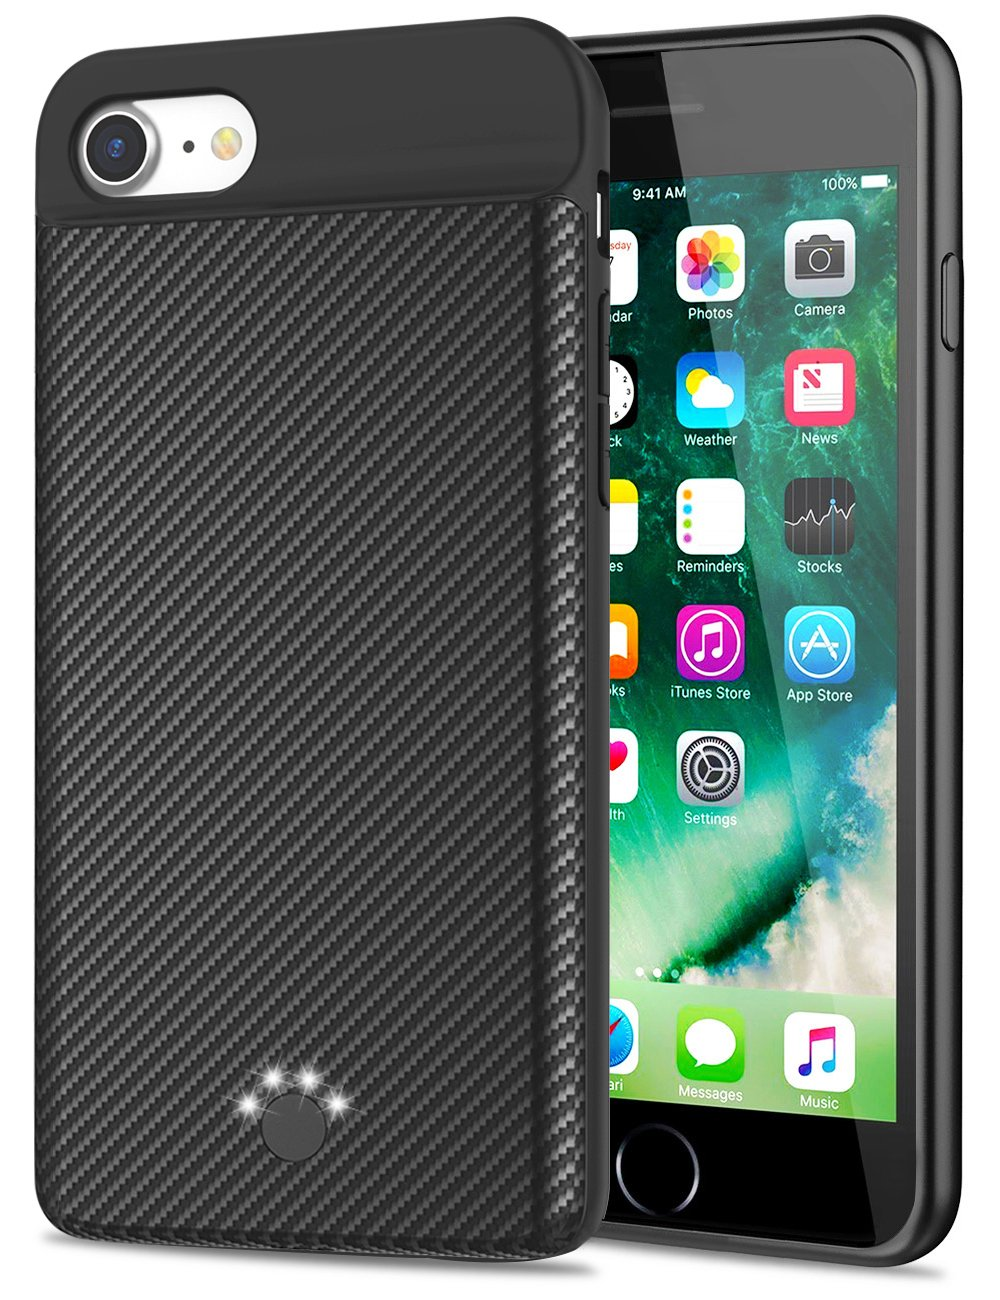 [Upgraded] iPhone 8/7 Battery Case,Emishine 3000mAh Ultra Slim External Battery Case for iPhone 8/7 / 6 / 6S, Portable Charging Case Charged by Lightning Cable (Black-4.7'')